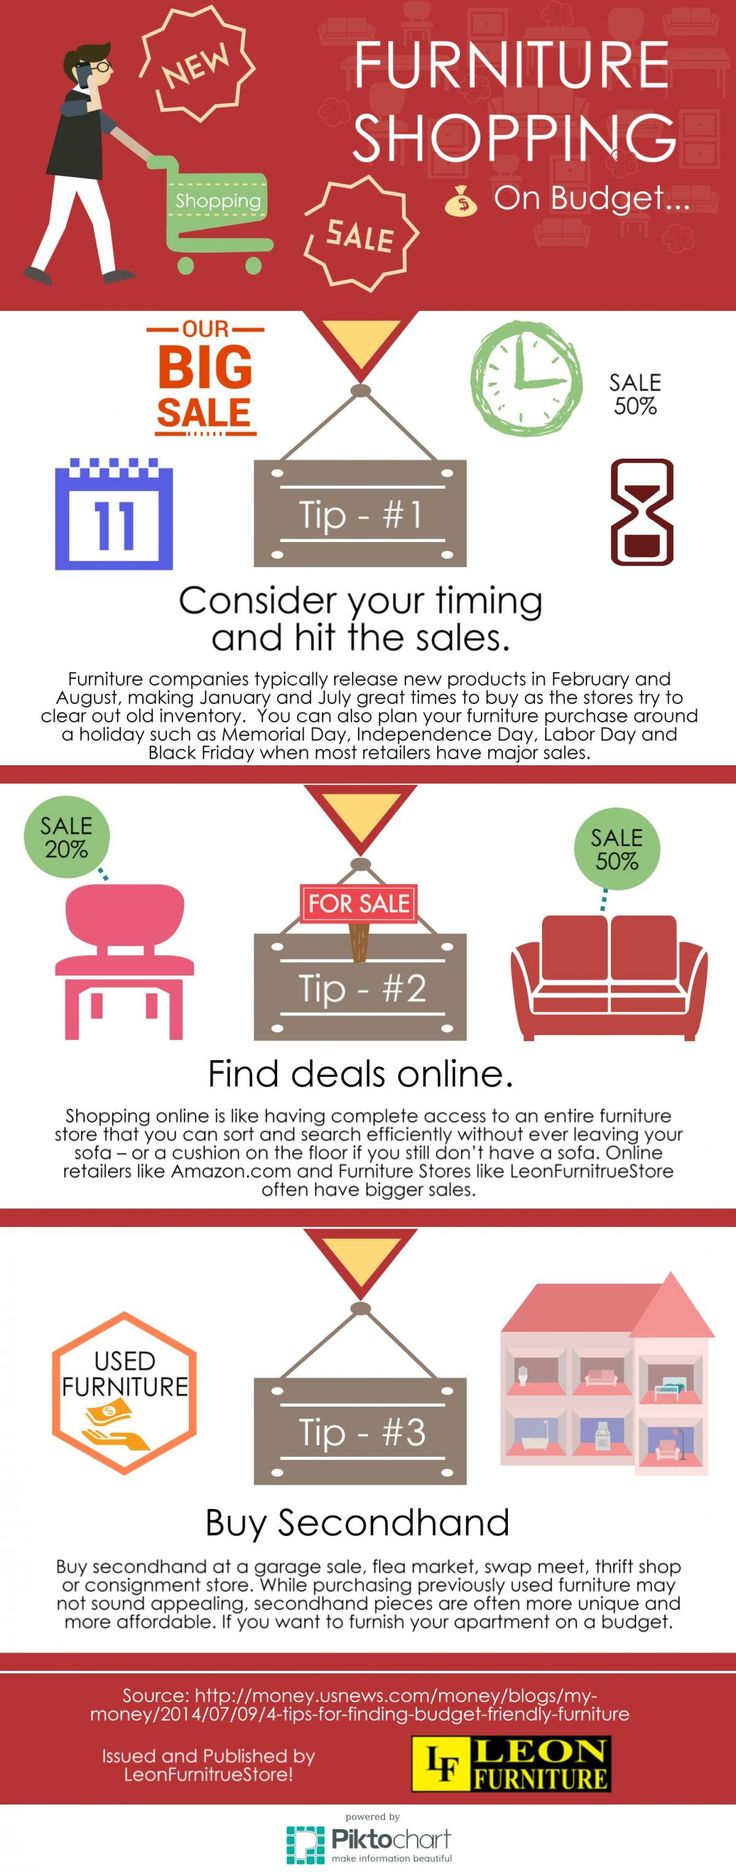 Everyone Loves Shopping And When It Comes To Furniture, We Become Little  Possessive On Budget. While Shopping You Must Decide On Your Budget First  And